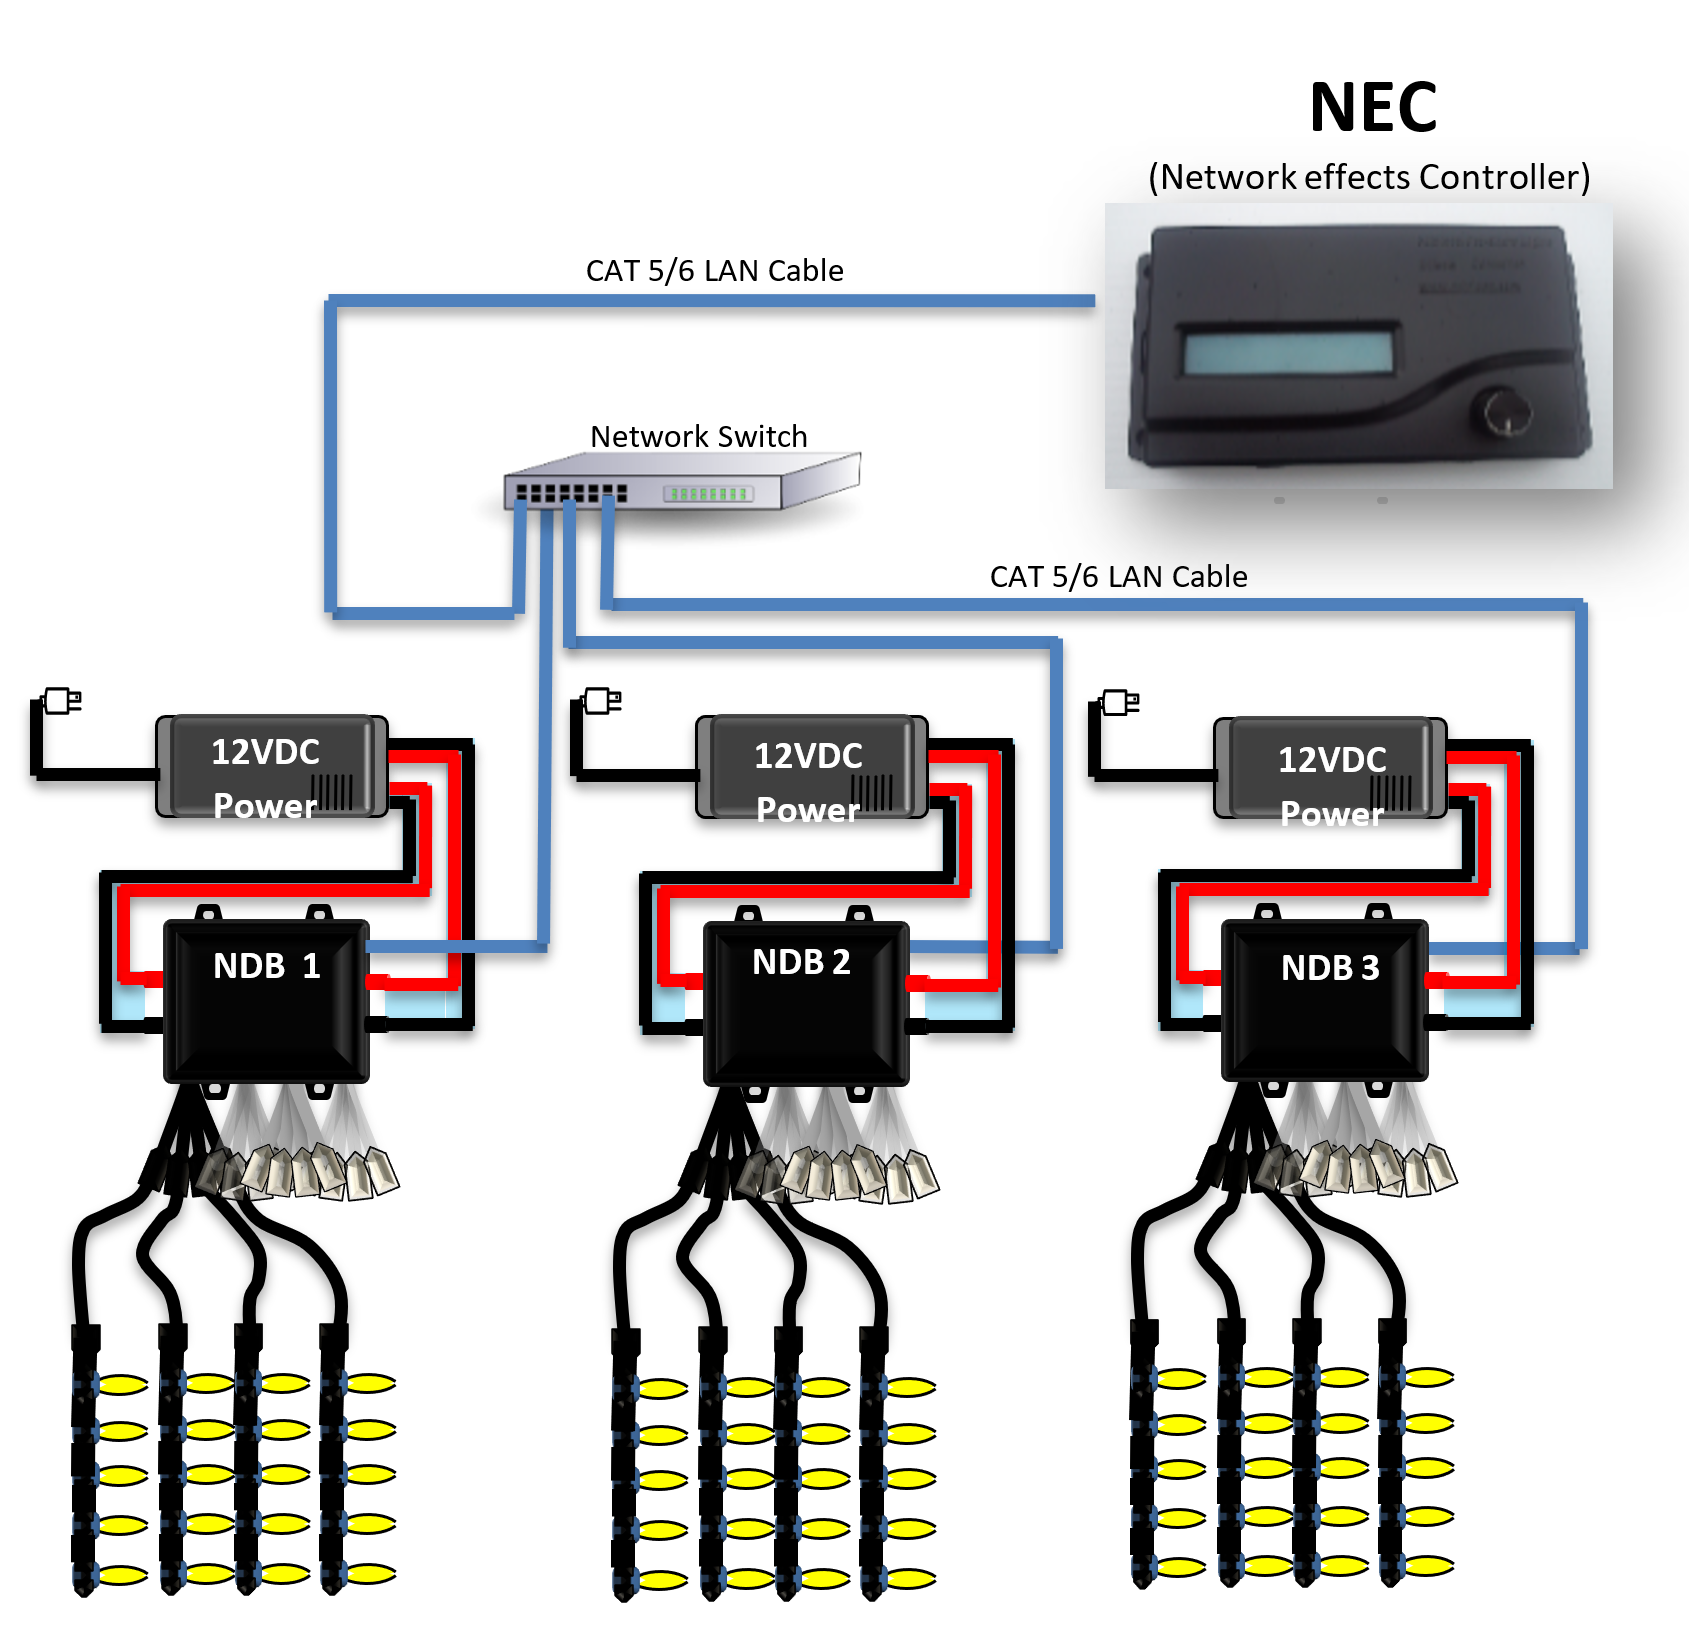 Minleon NEC Controller Layout